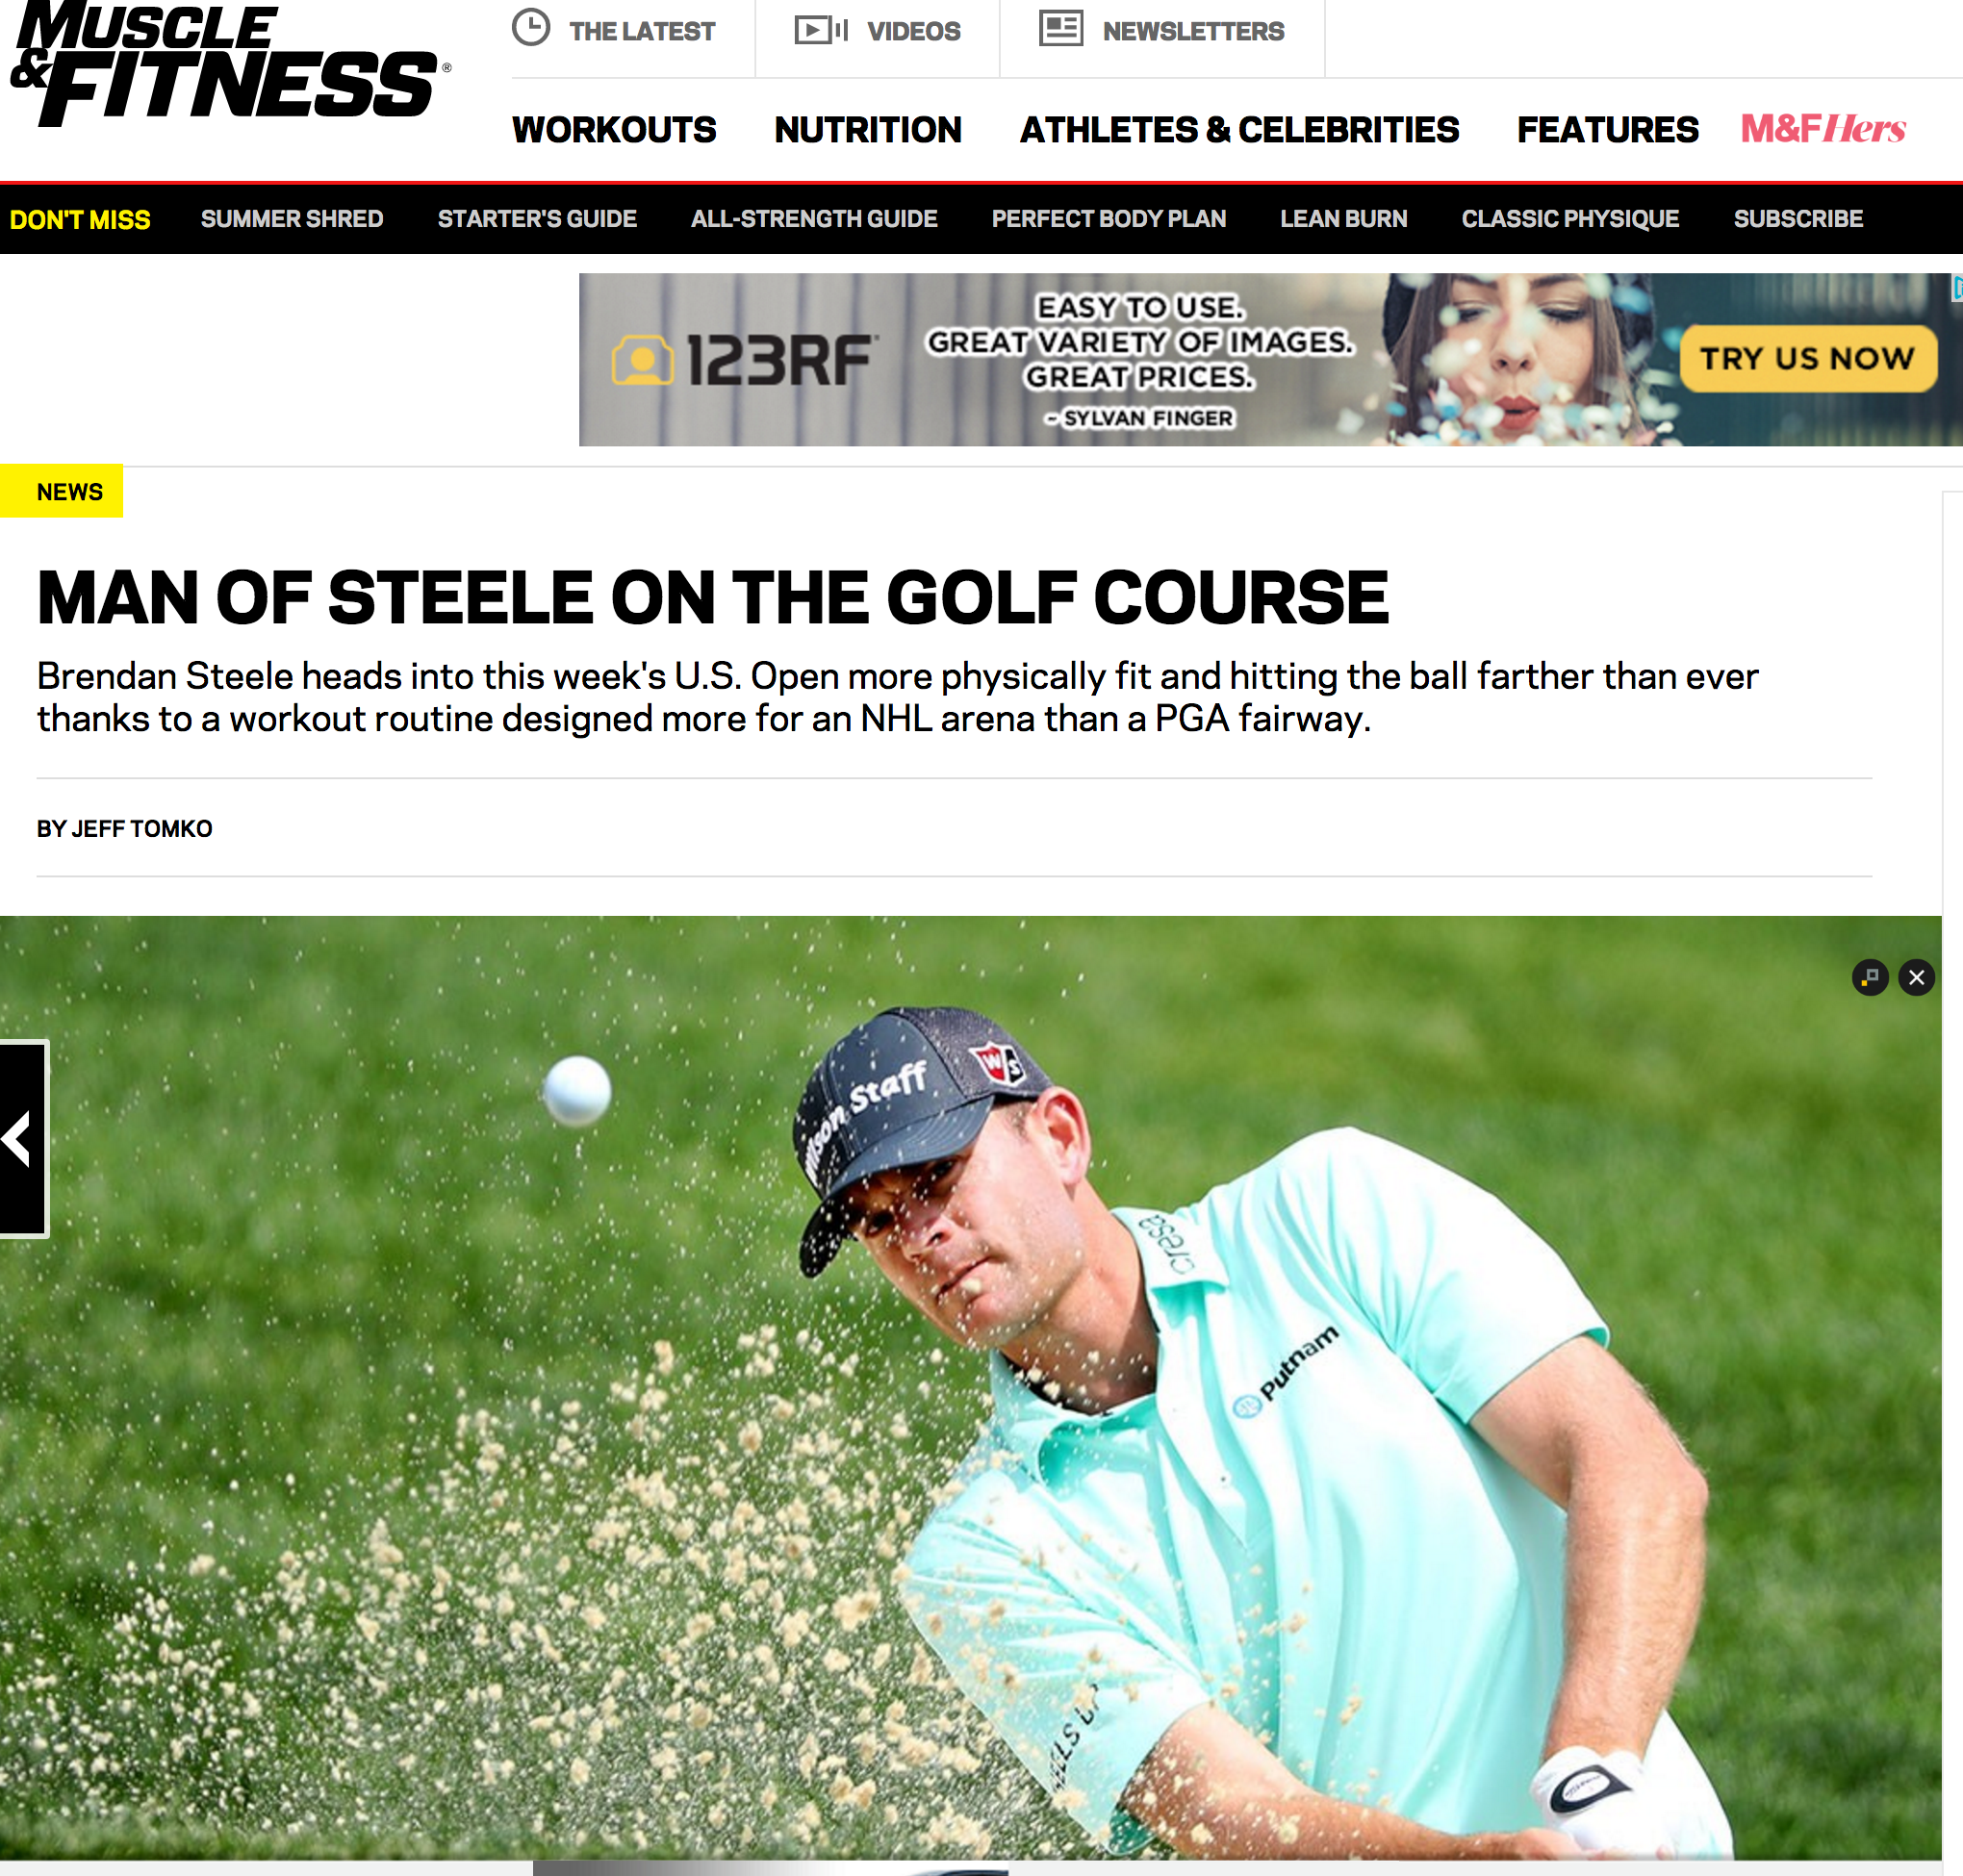 Muscle & Fitness provides an inside look into how the work I have done with PGA Tour Professional Brendan Steele in the weight room has paid off over the last 5 years. Click on the image to read.